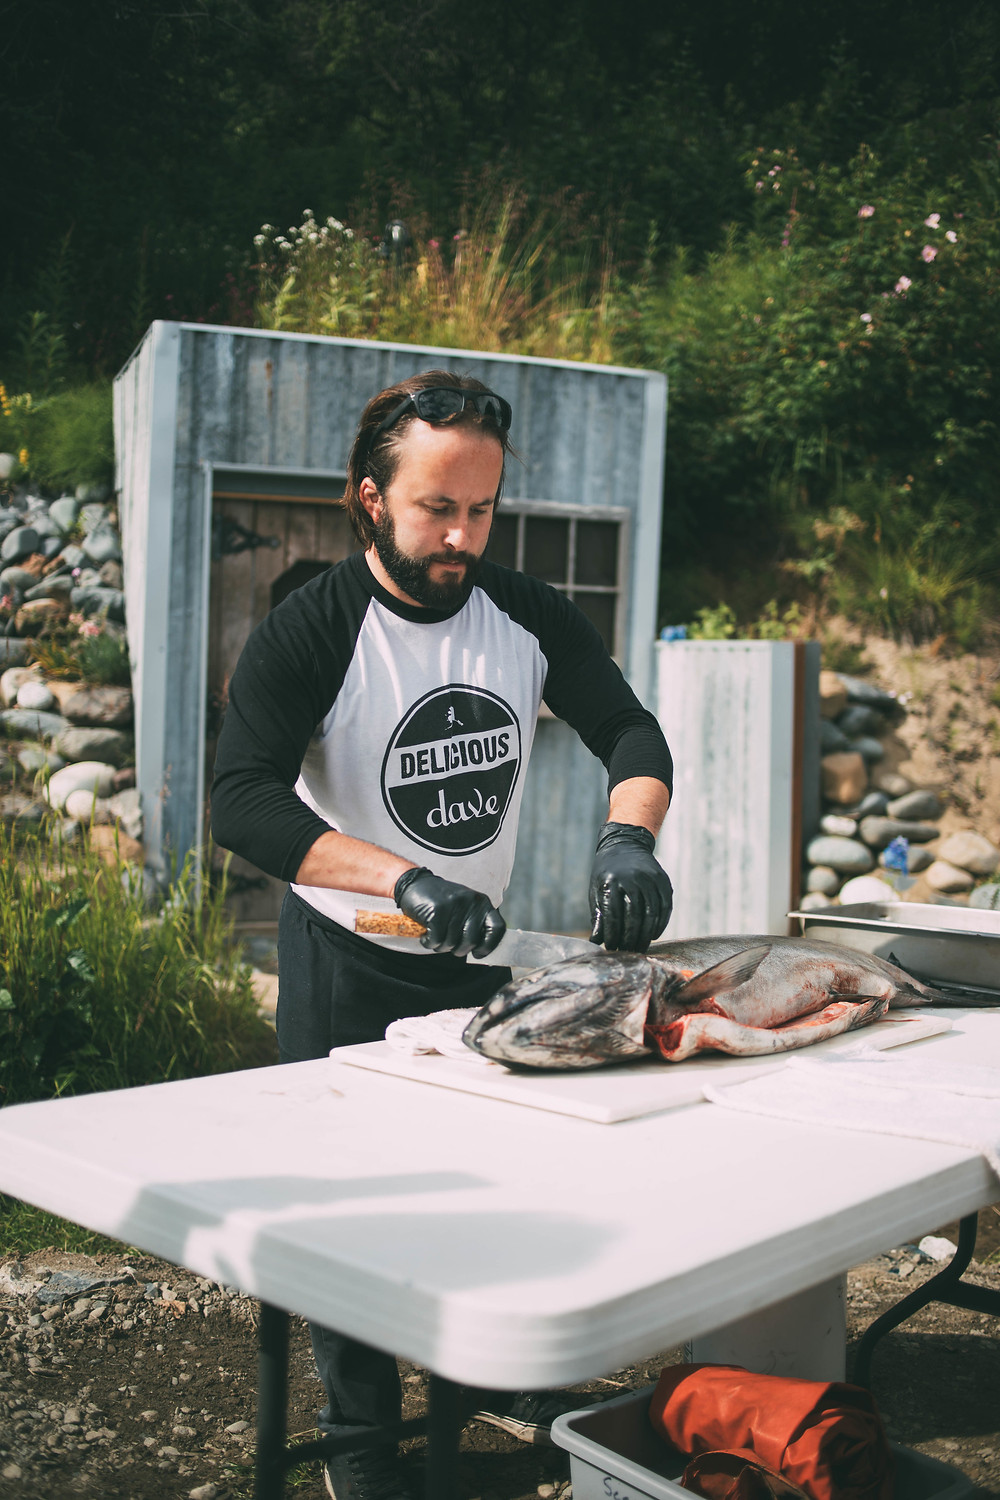 Delicious Dave catering Alaska, demonstrating how to filet a king salmon